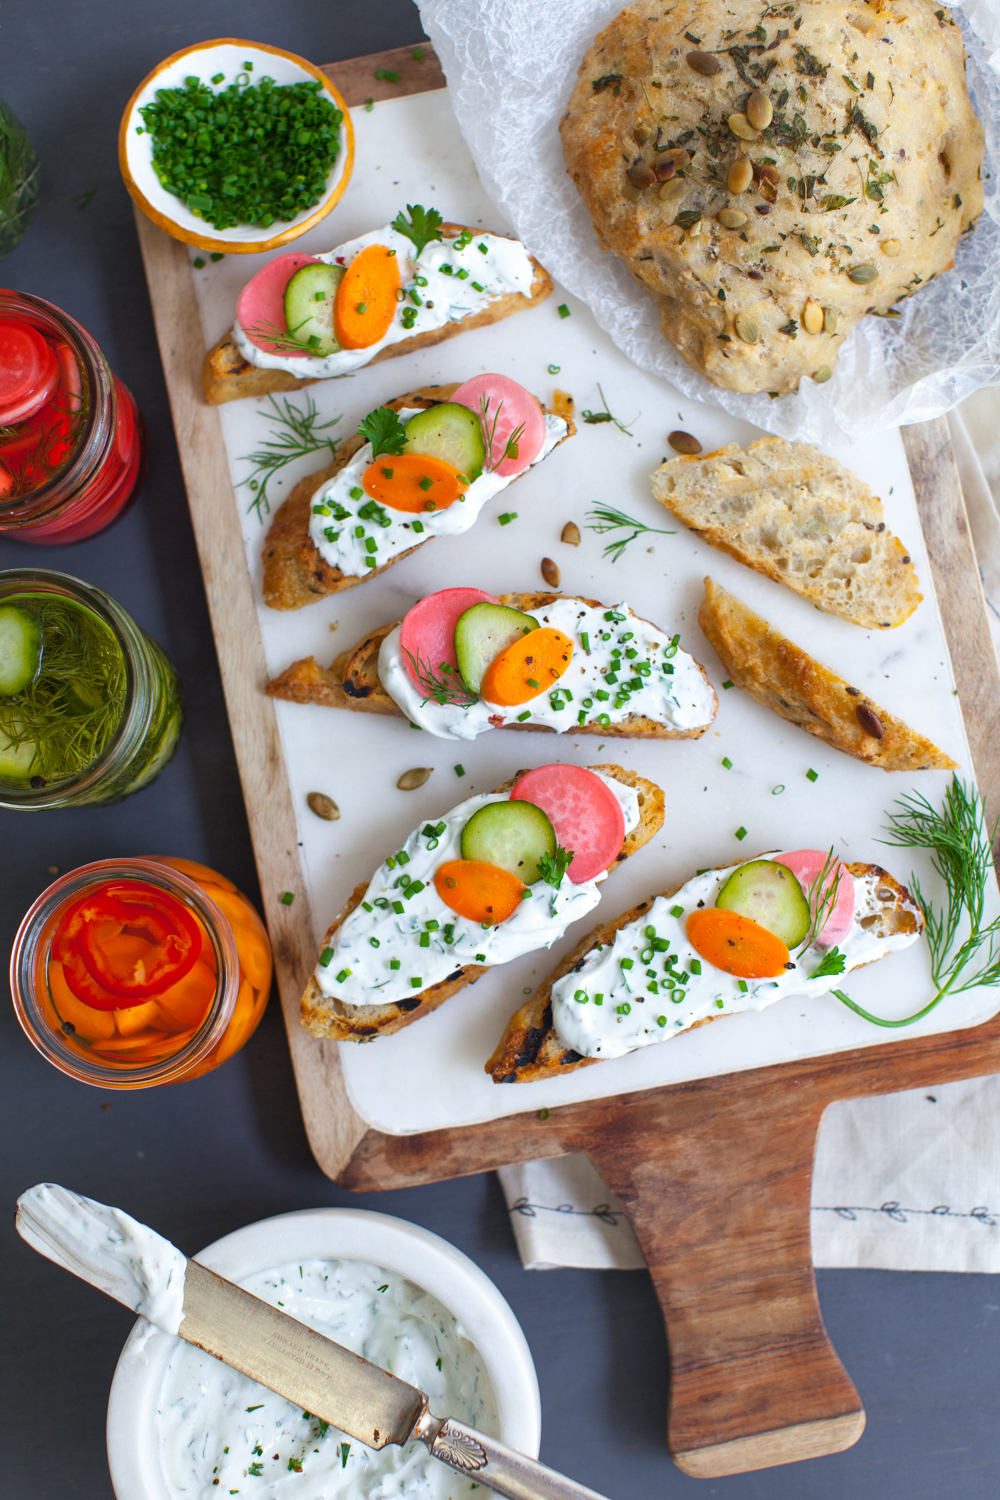 A party platter of Toast with Herbed Skyr and Quick Pickles